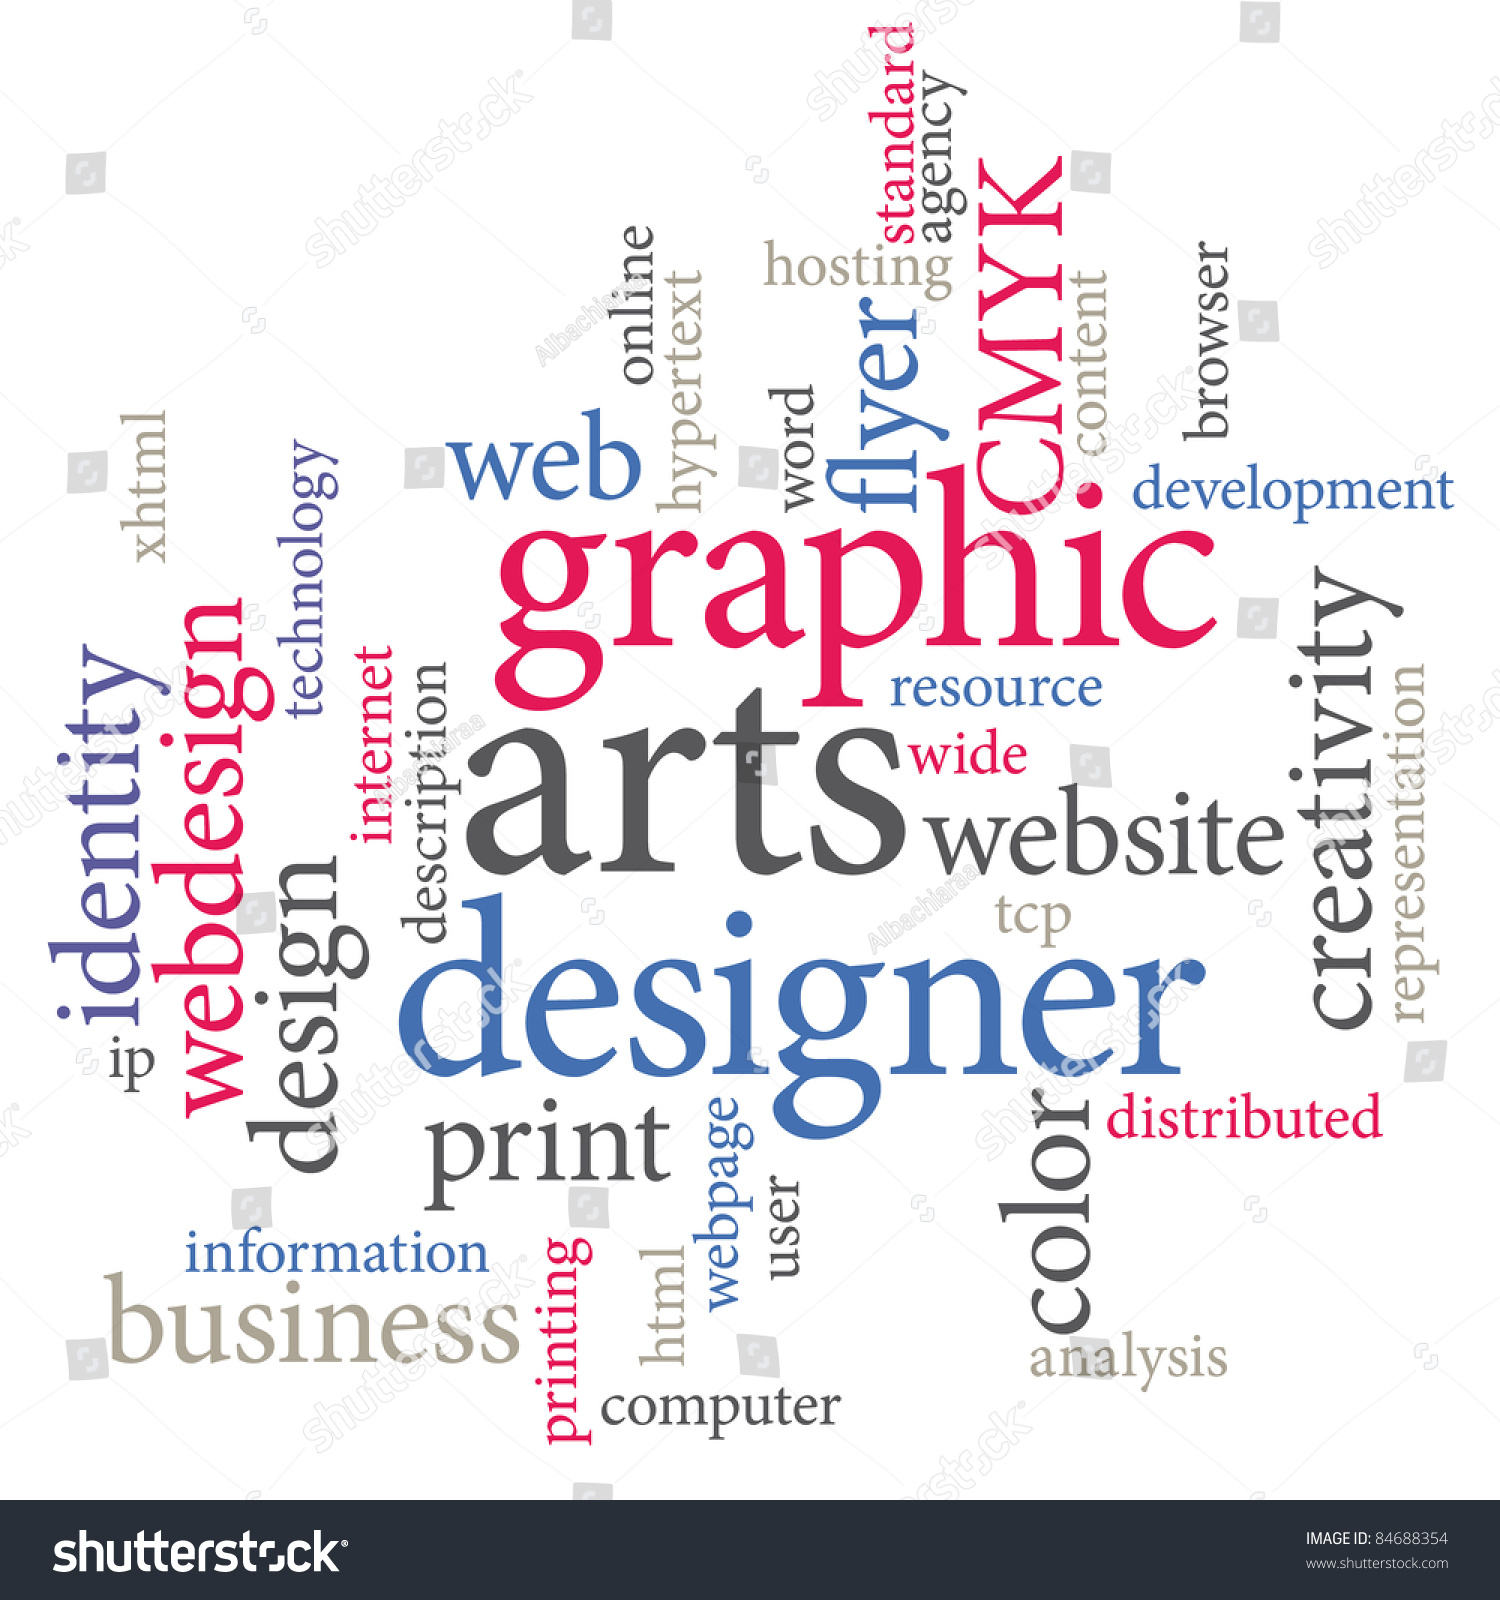 Graphic designer trendy print concept word cloud stock photo 84688354 shutterstock for Microsoft word graphic design